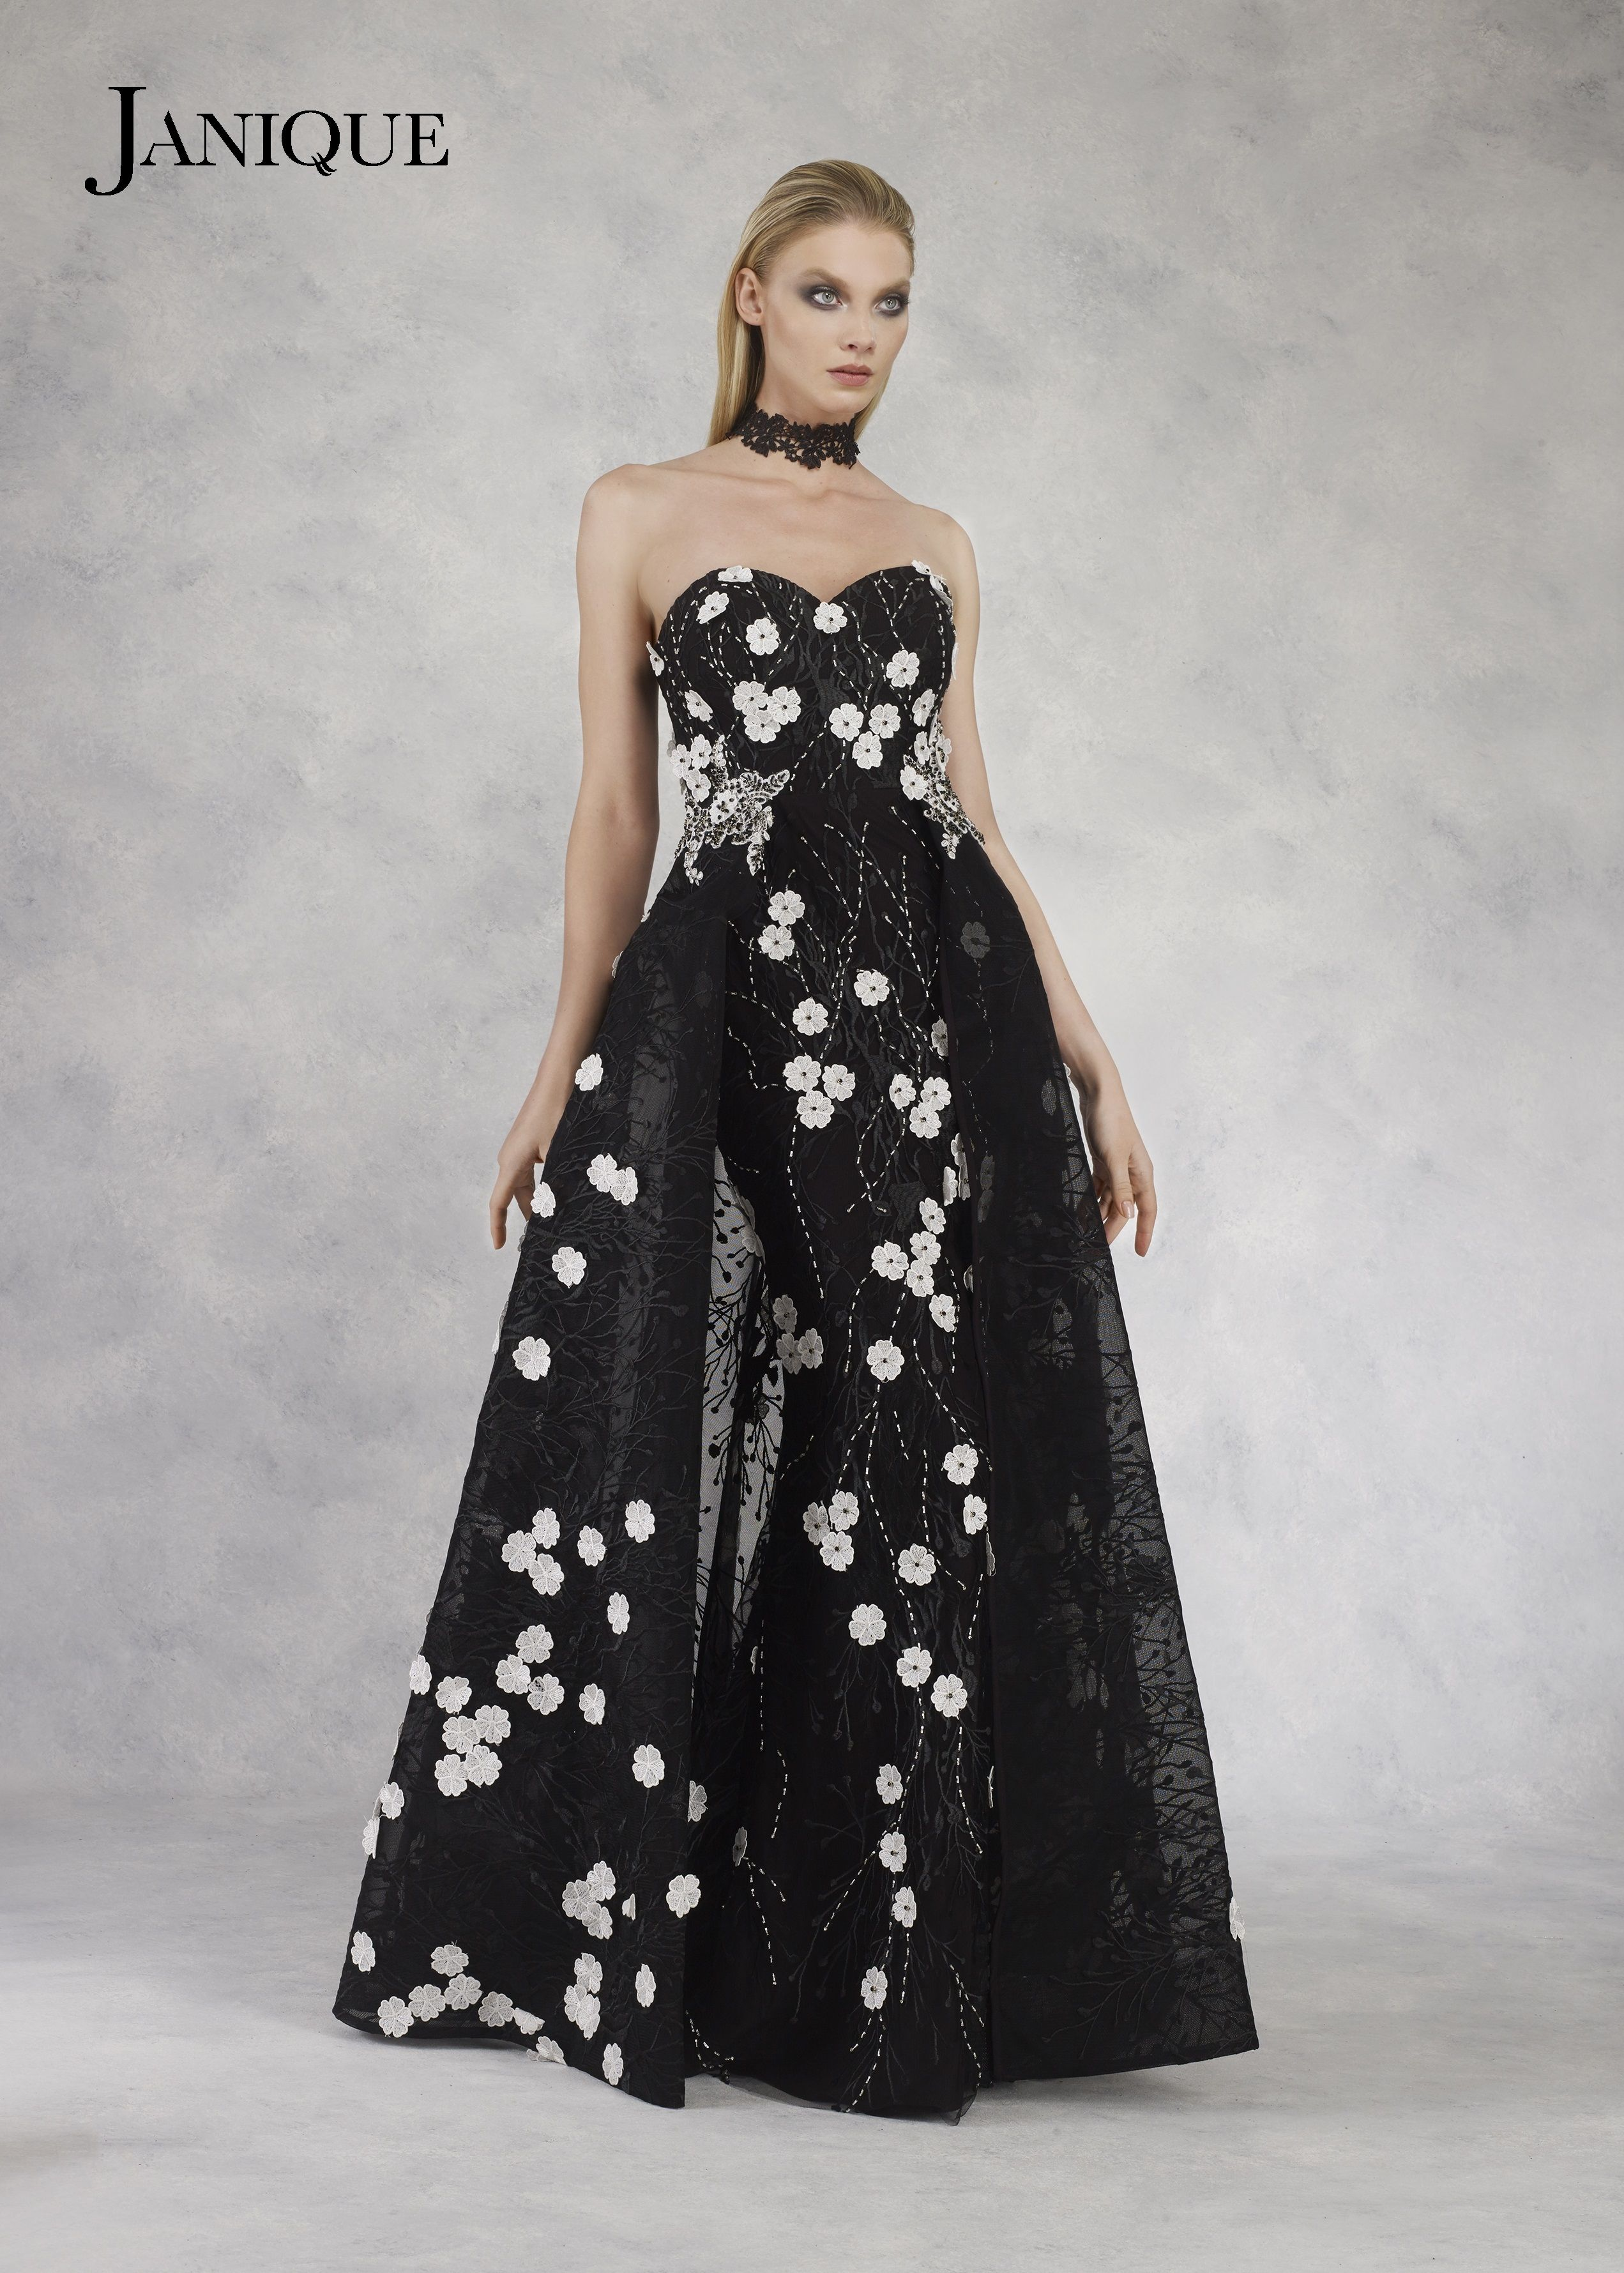 Janique w dress collection this evening dress is fashioned